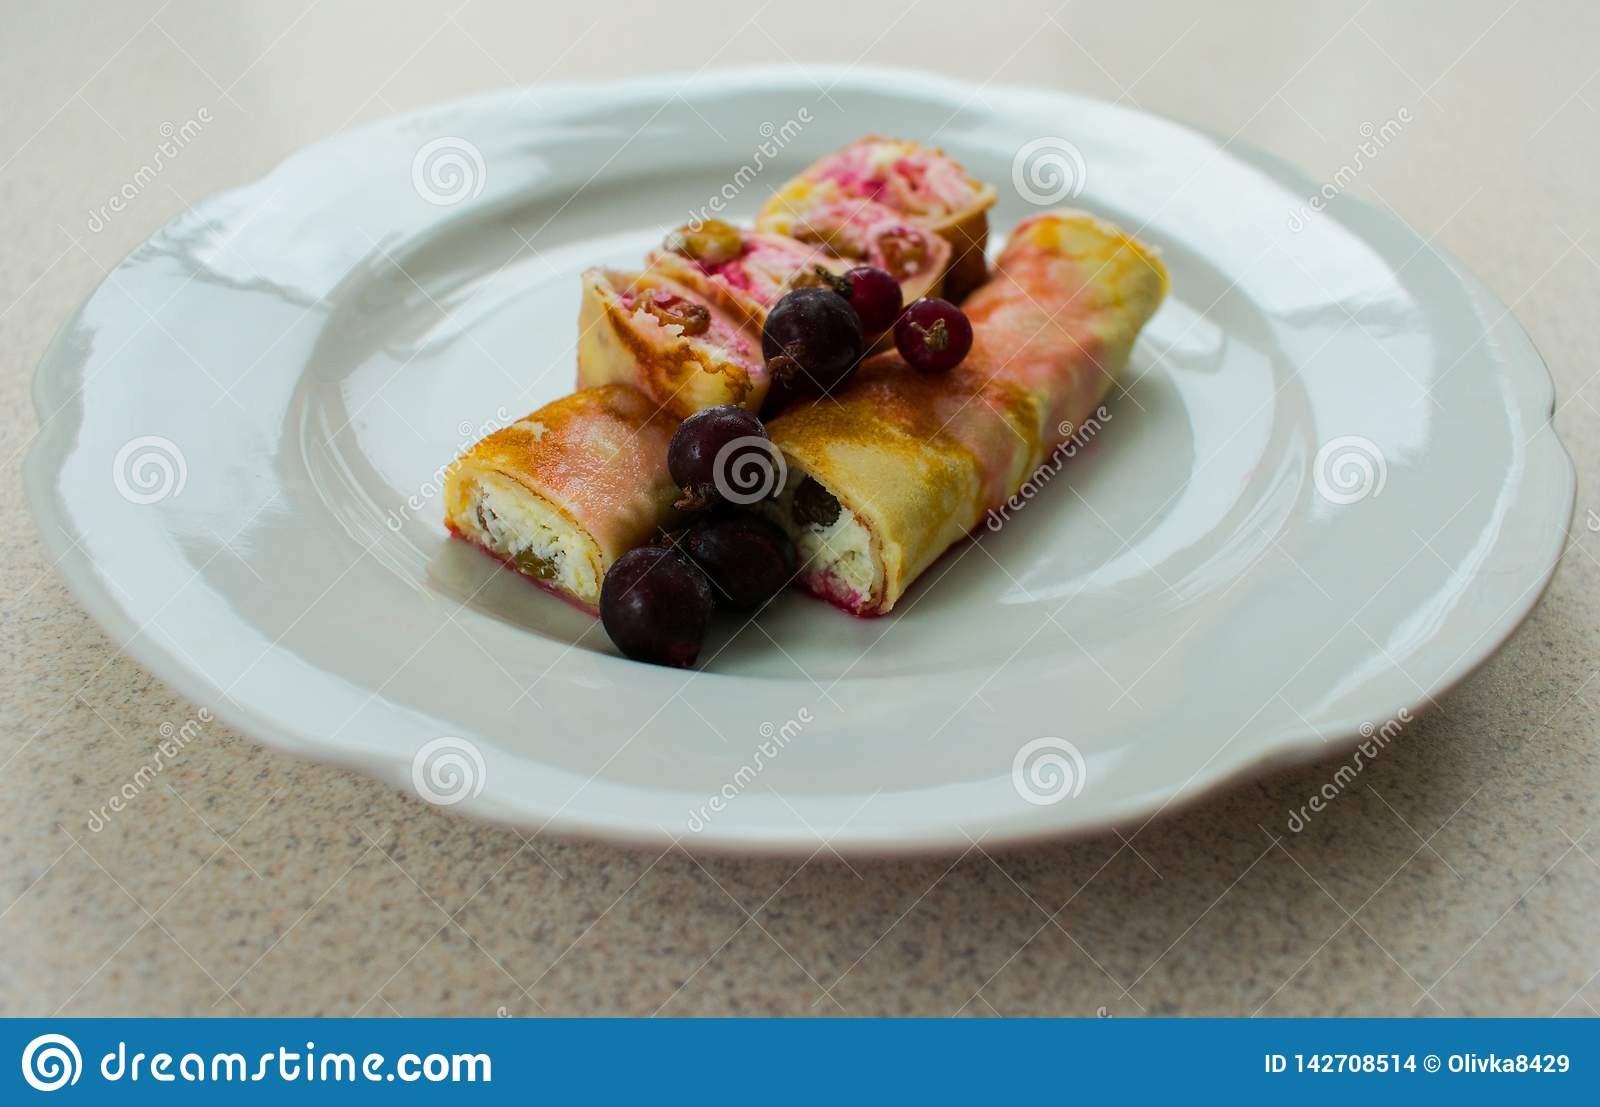 Pancake with cream cheese and berries